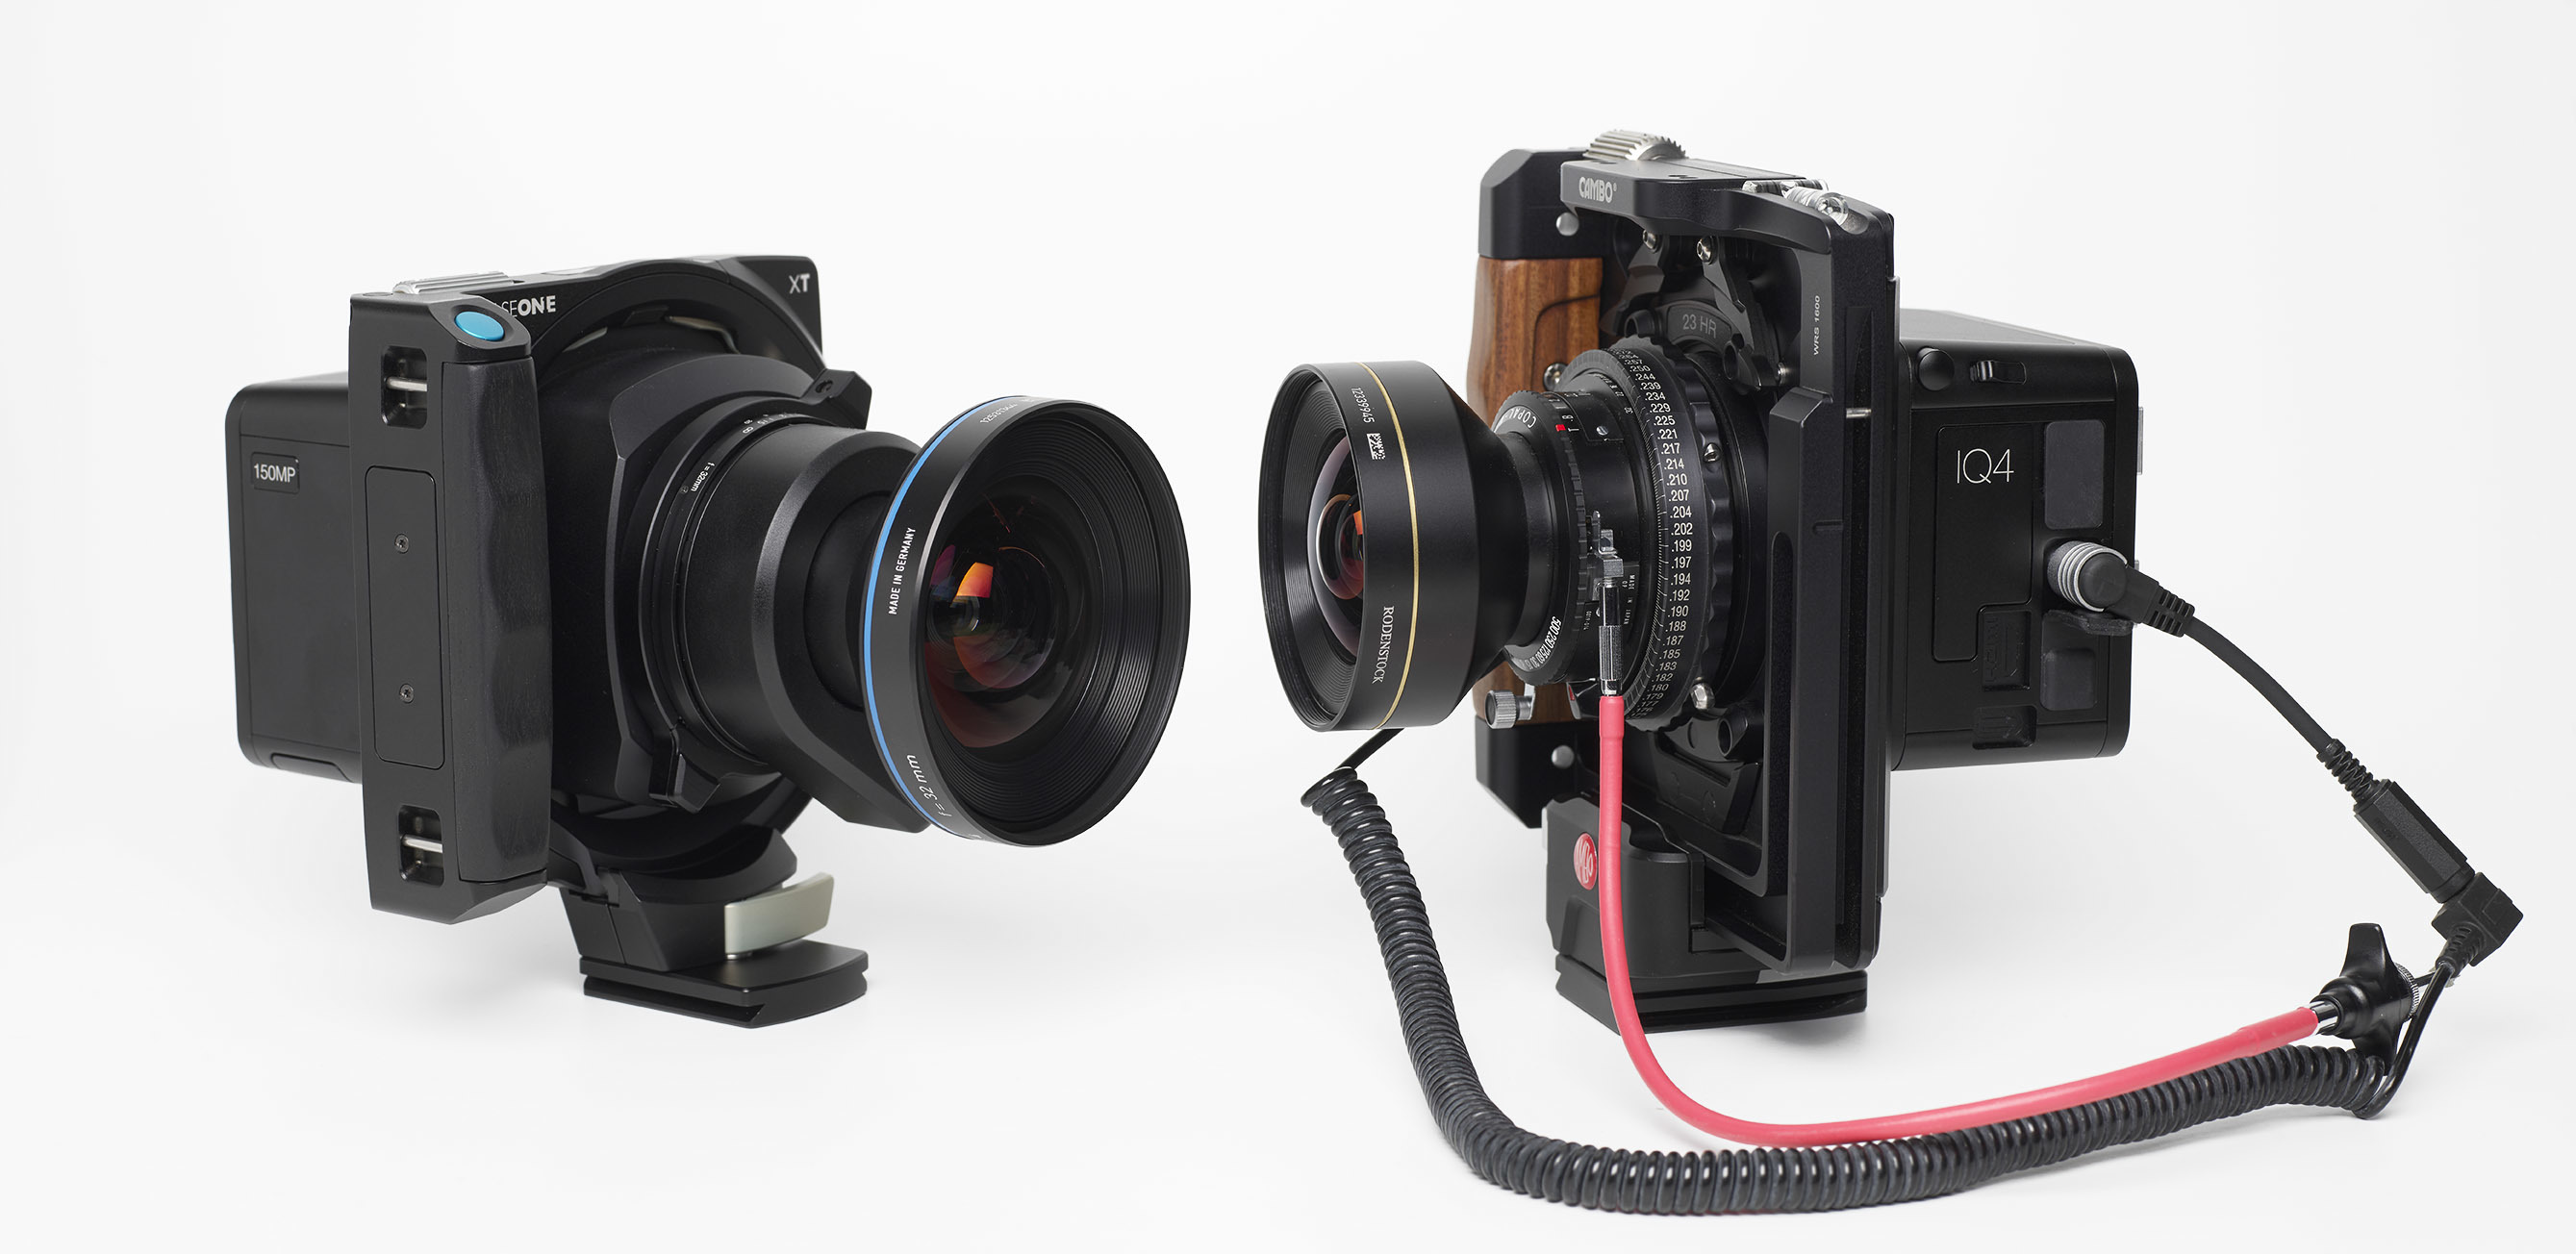 Specular Blog \u2013 Comparing the Phase One XT Camera to previous cameras